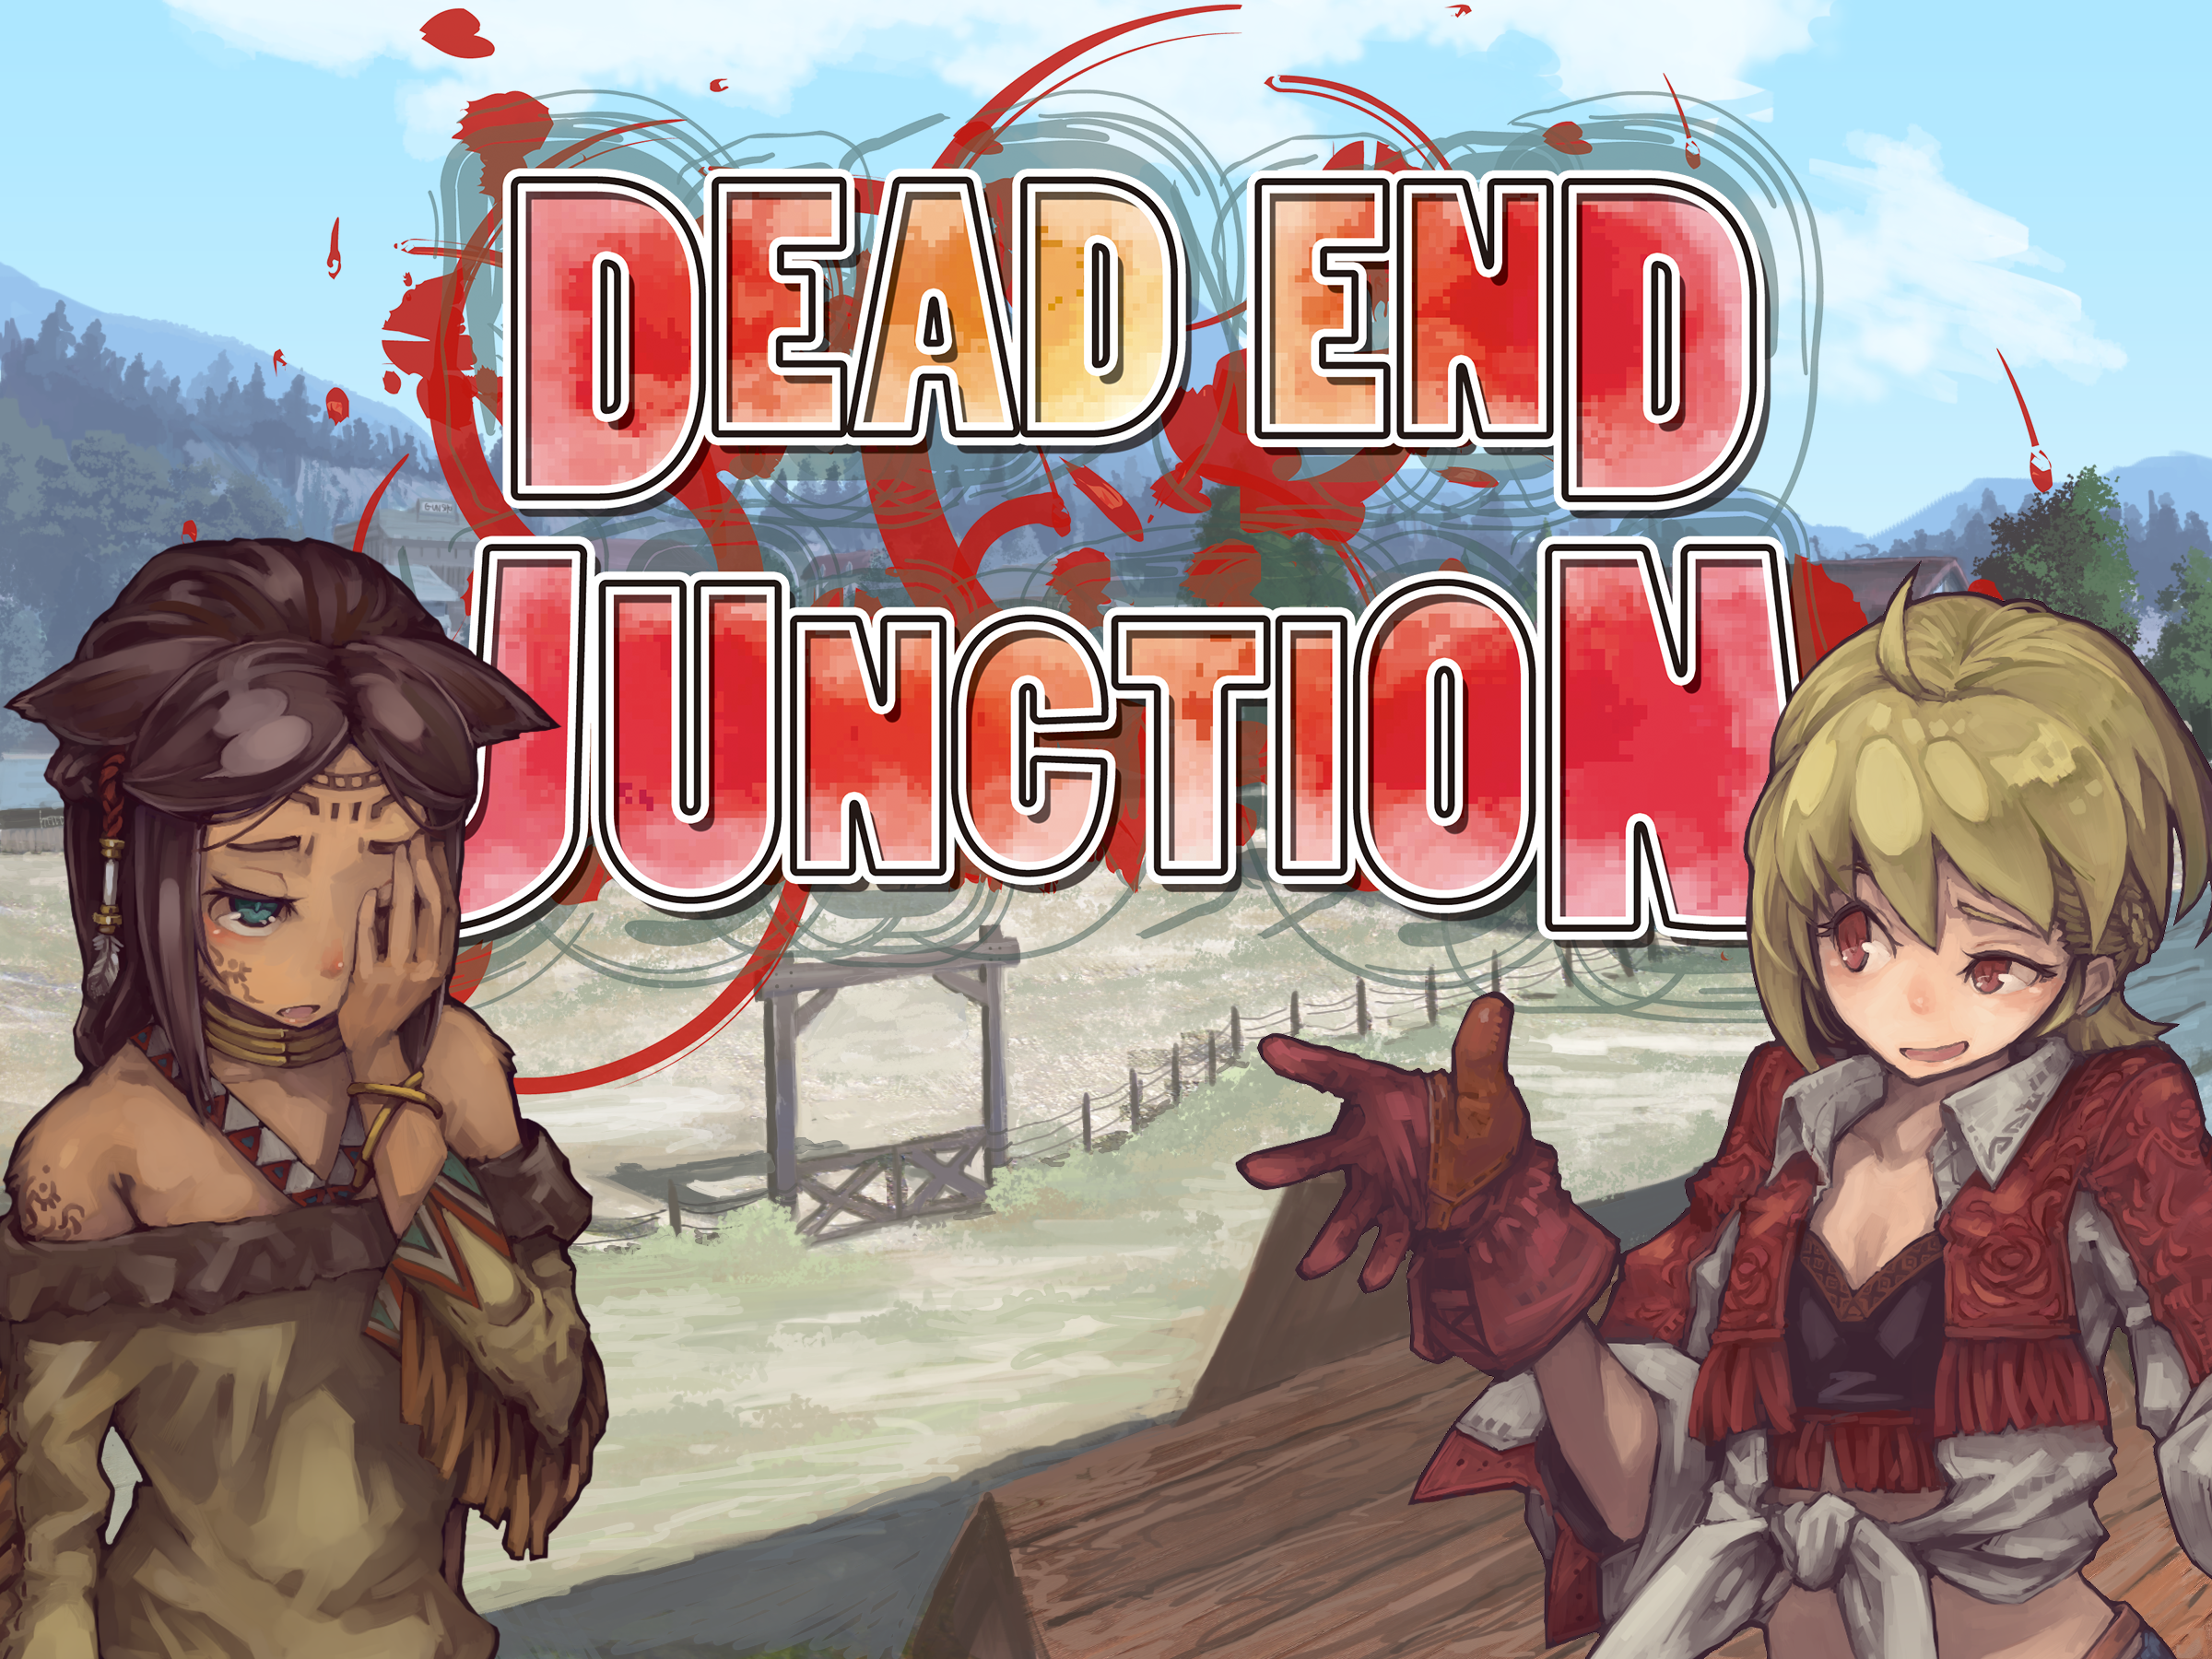 dead-end-junction-mangagamer-above-the-cut-image_01